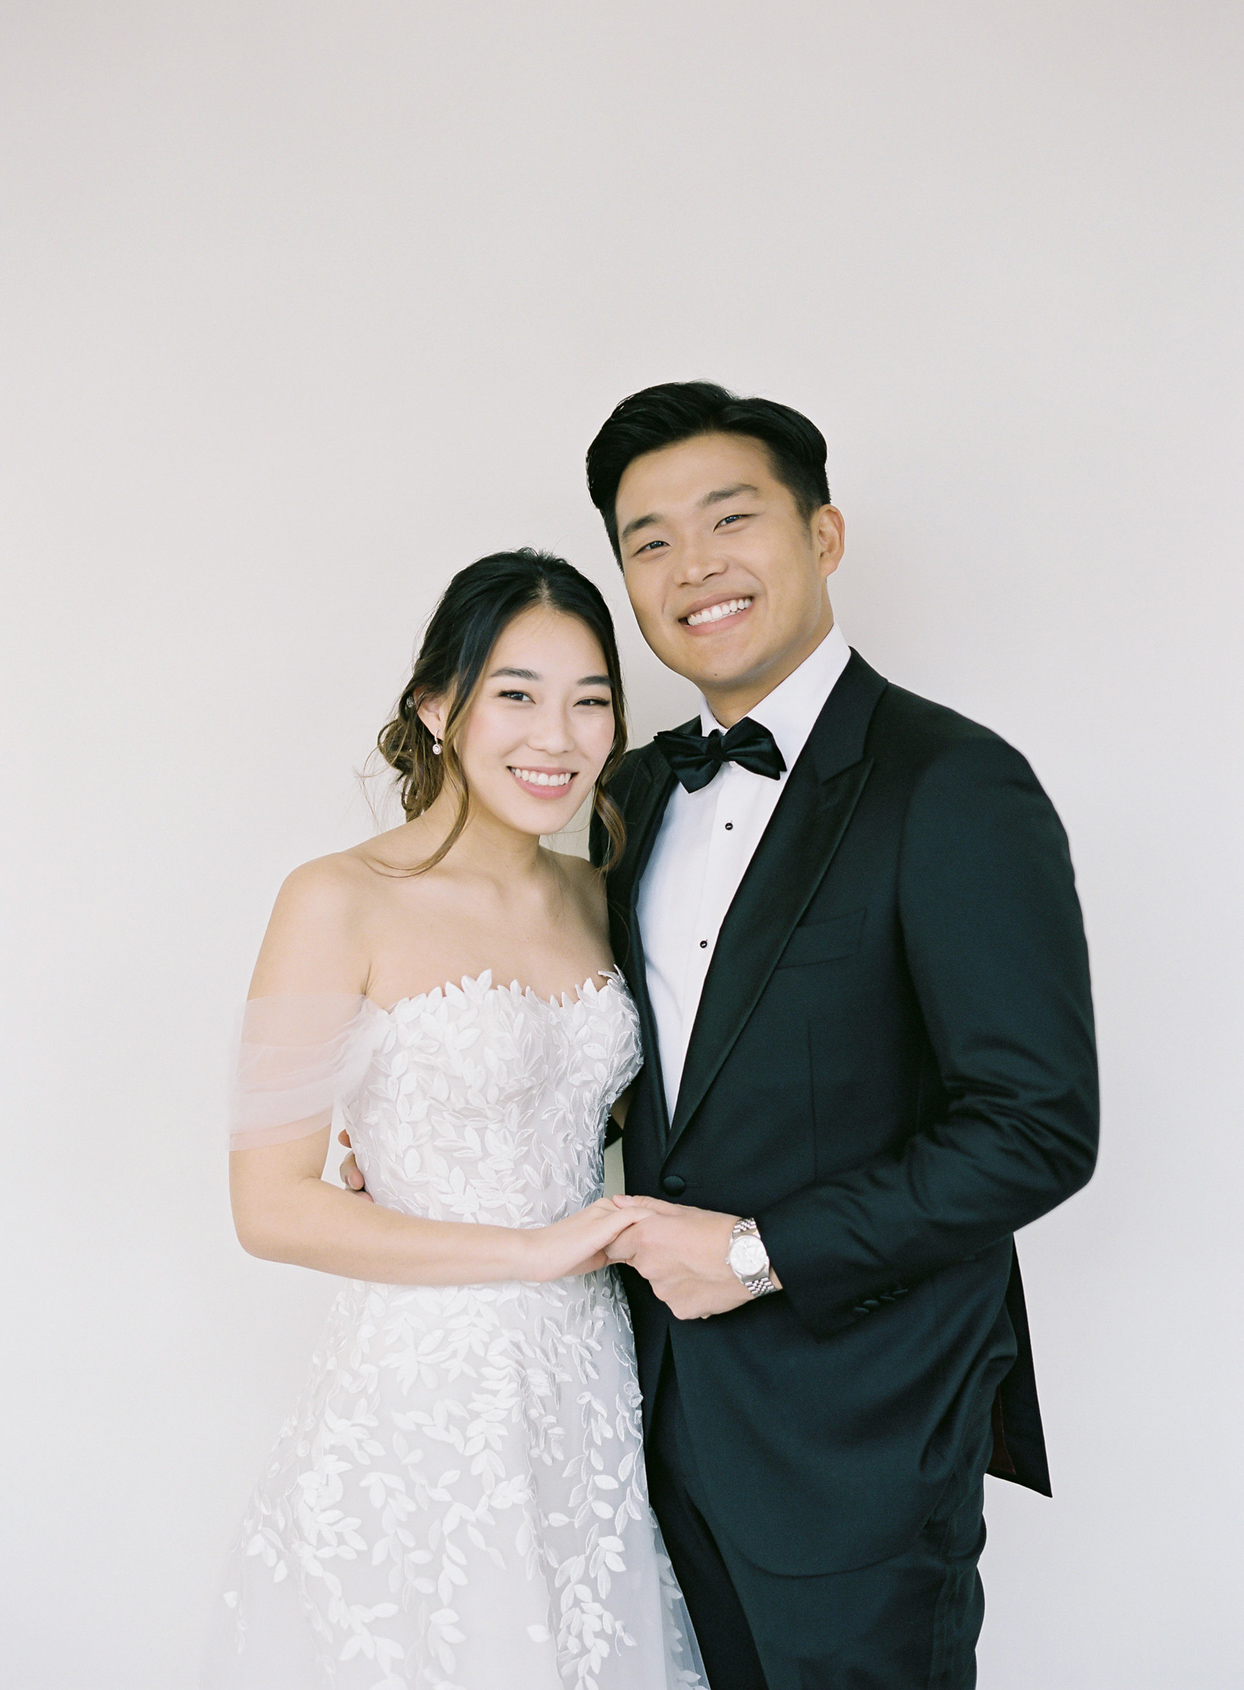 wedding couple portrait against white wall